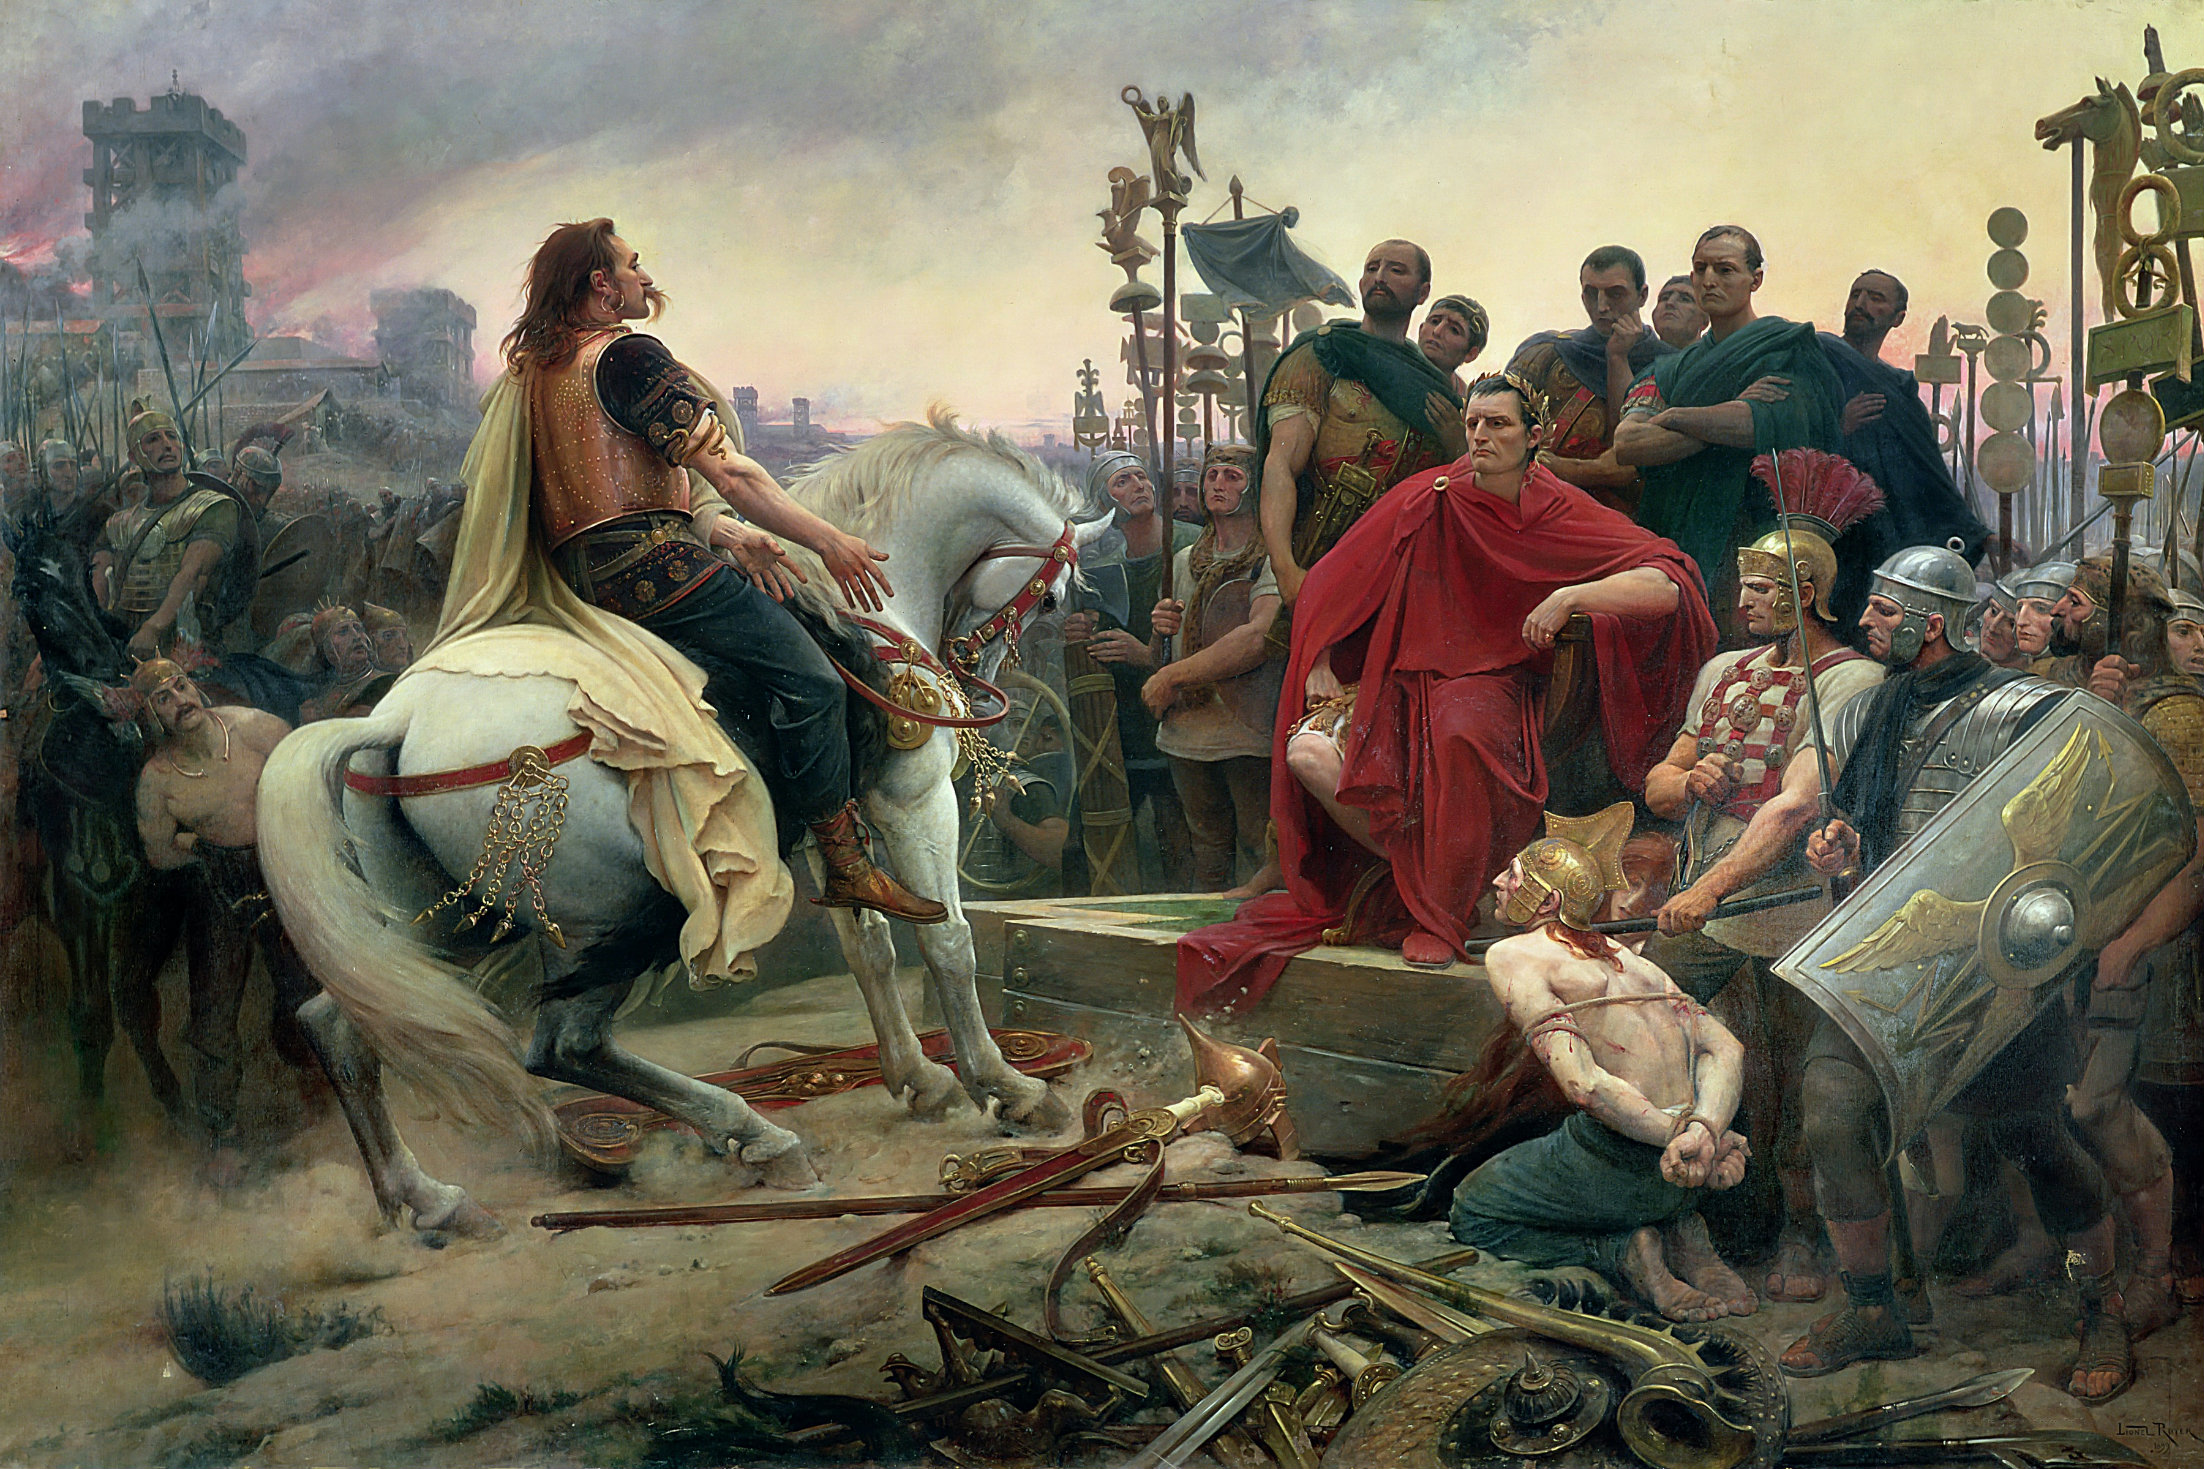 https://upload.wikimedia.org/wikipedia/commons/9/93/Siege-alesia-vercingetorix-jules-cesar.jpg